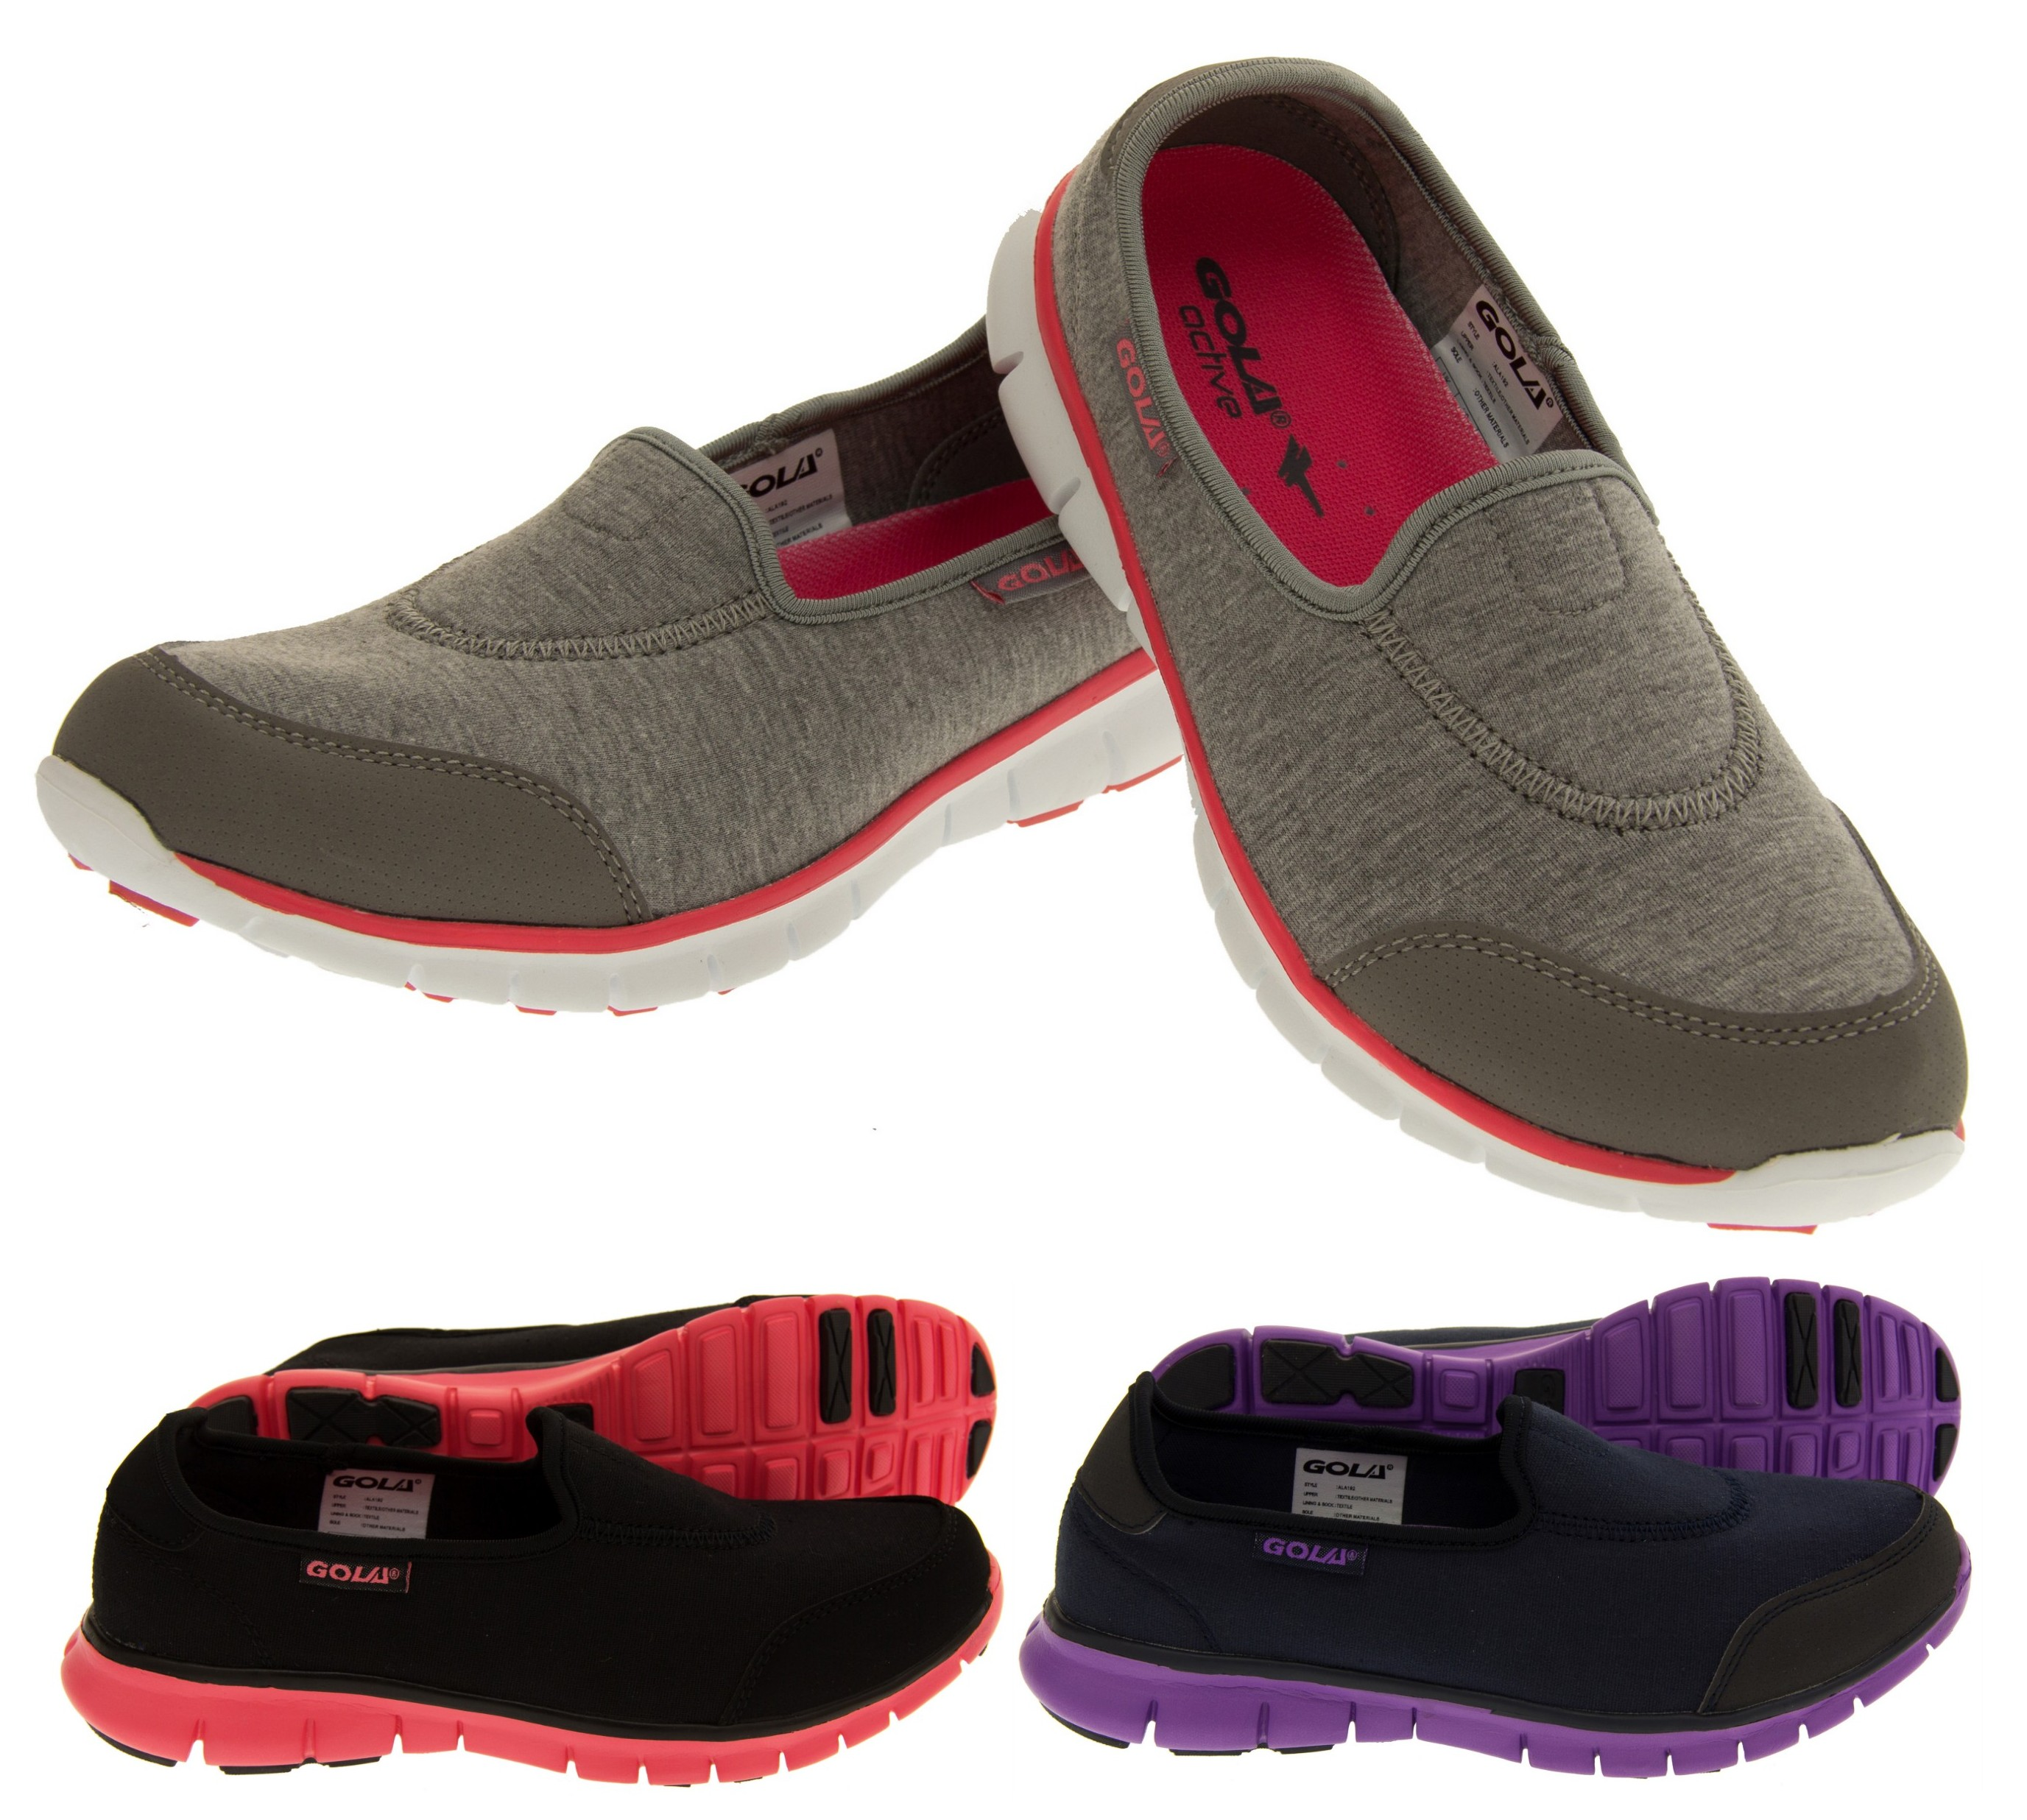 new gola fitness trainers womens slip on sports